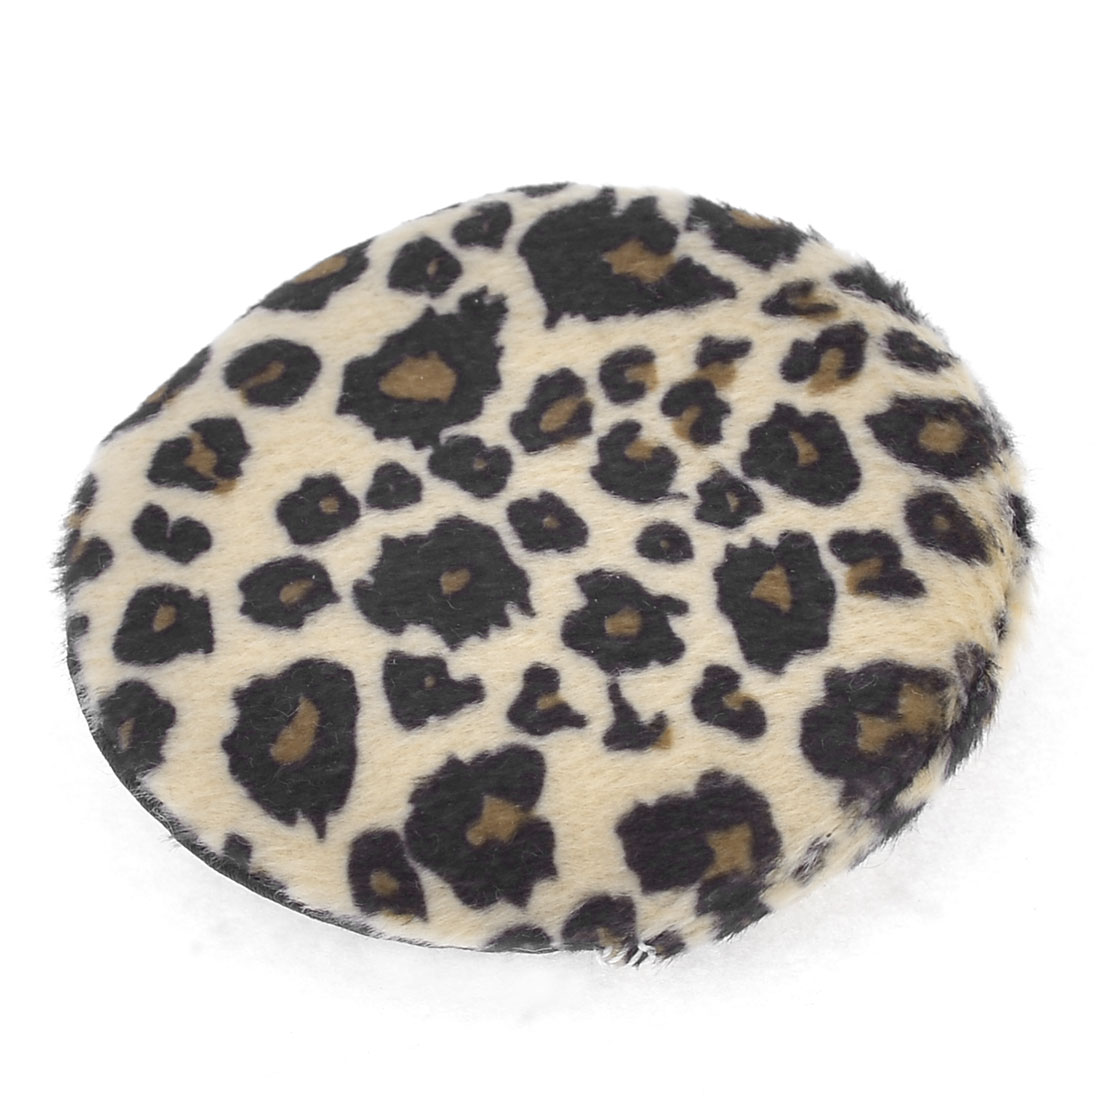 Beige Brown Black Round Leopard Soft Sponge Facial Cosmetic Powder Puff